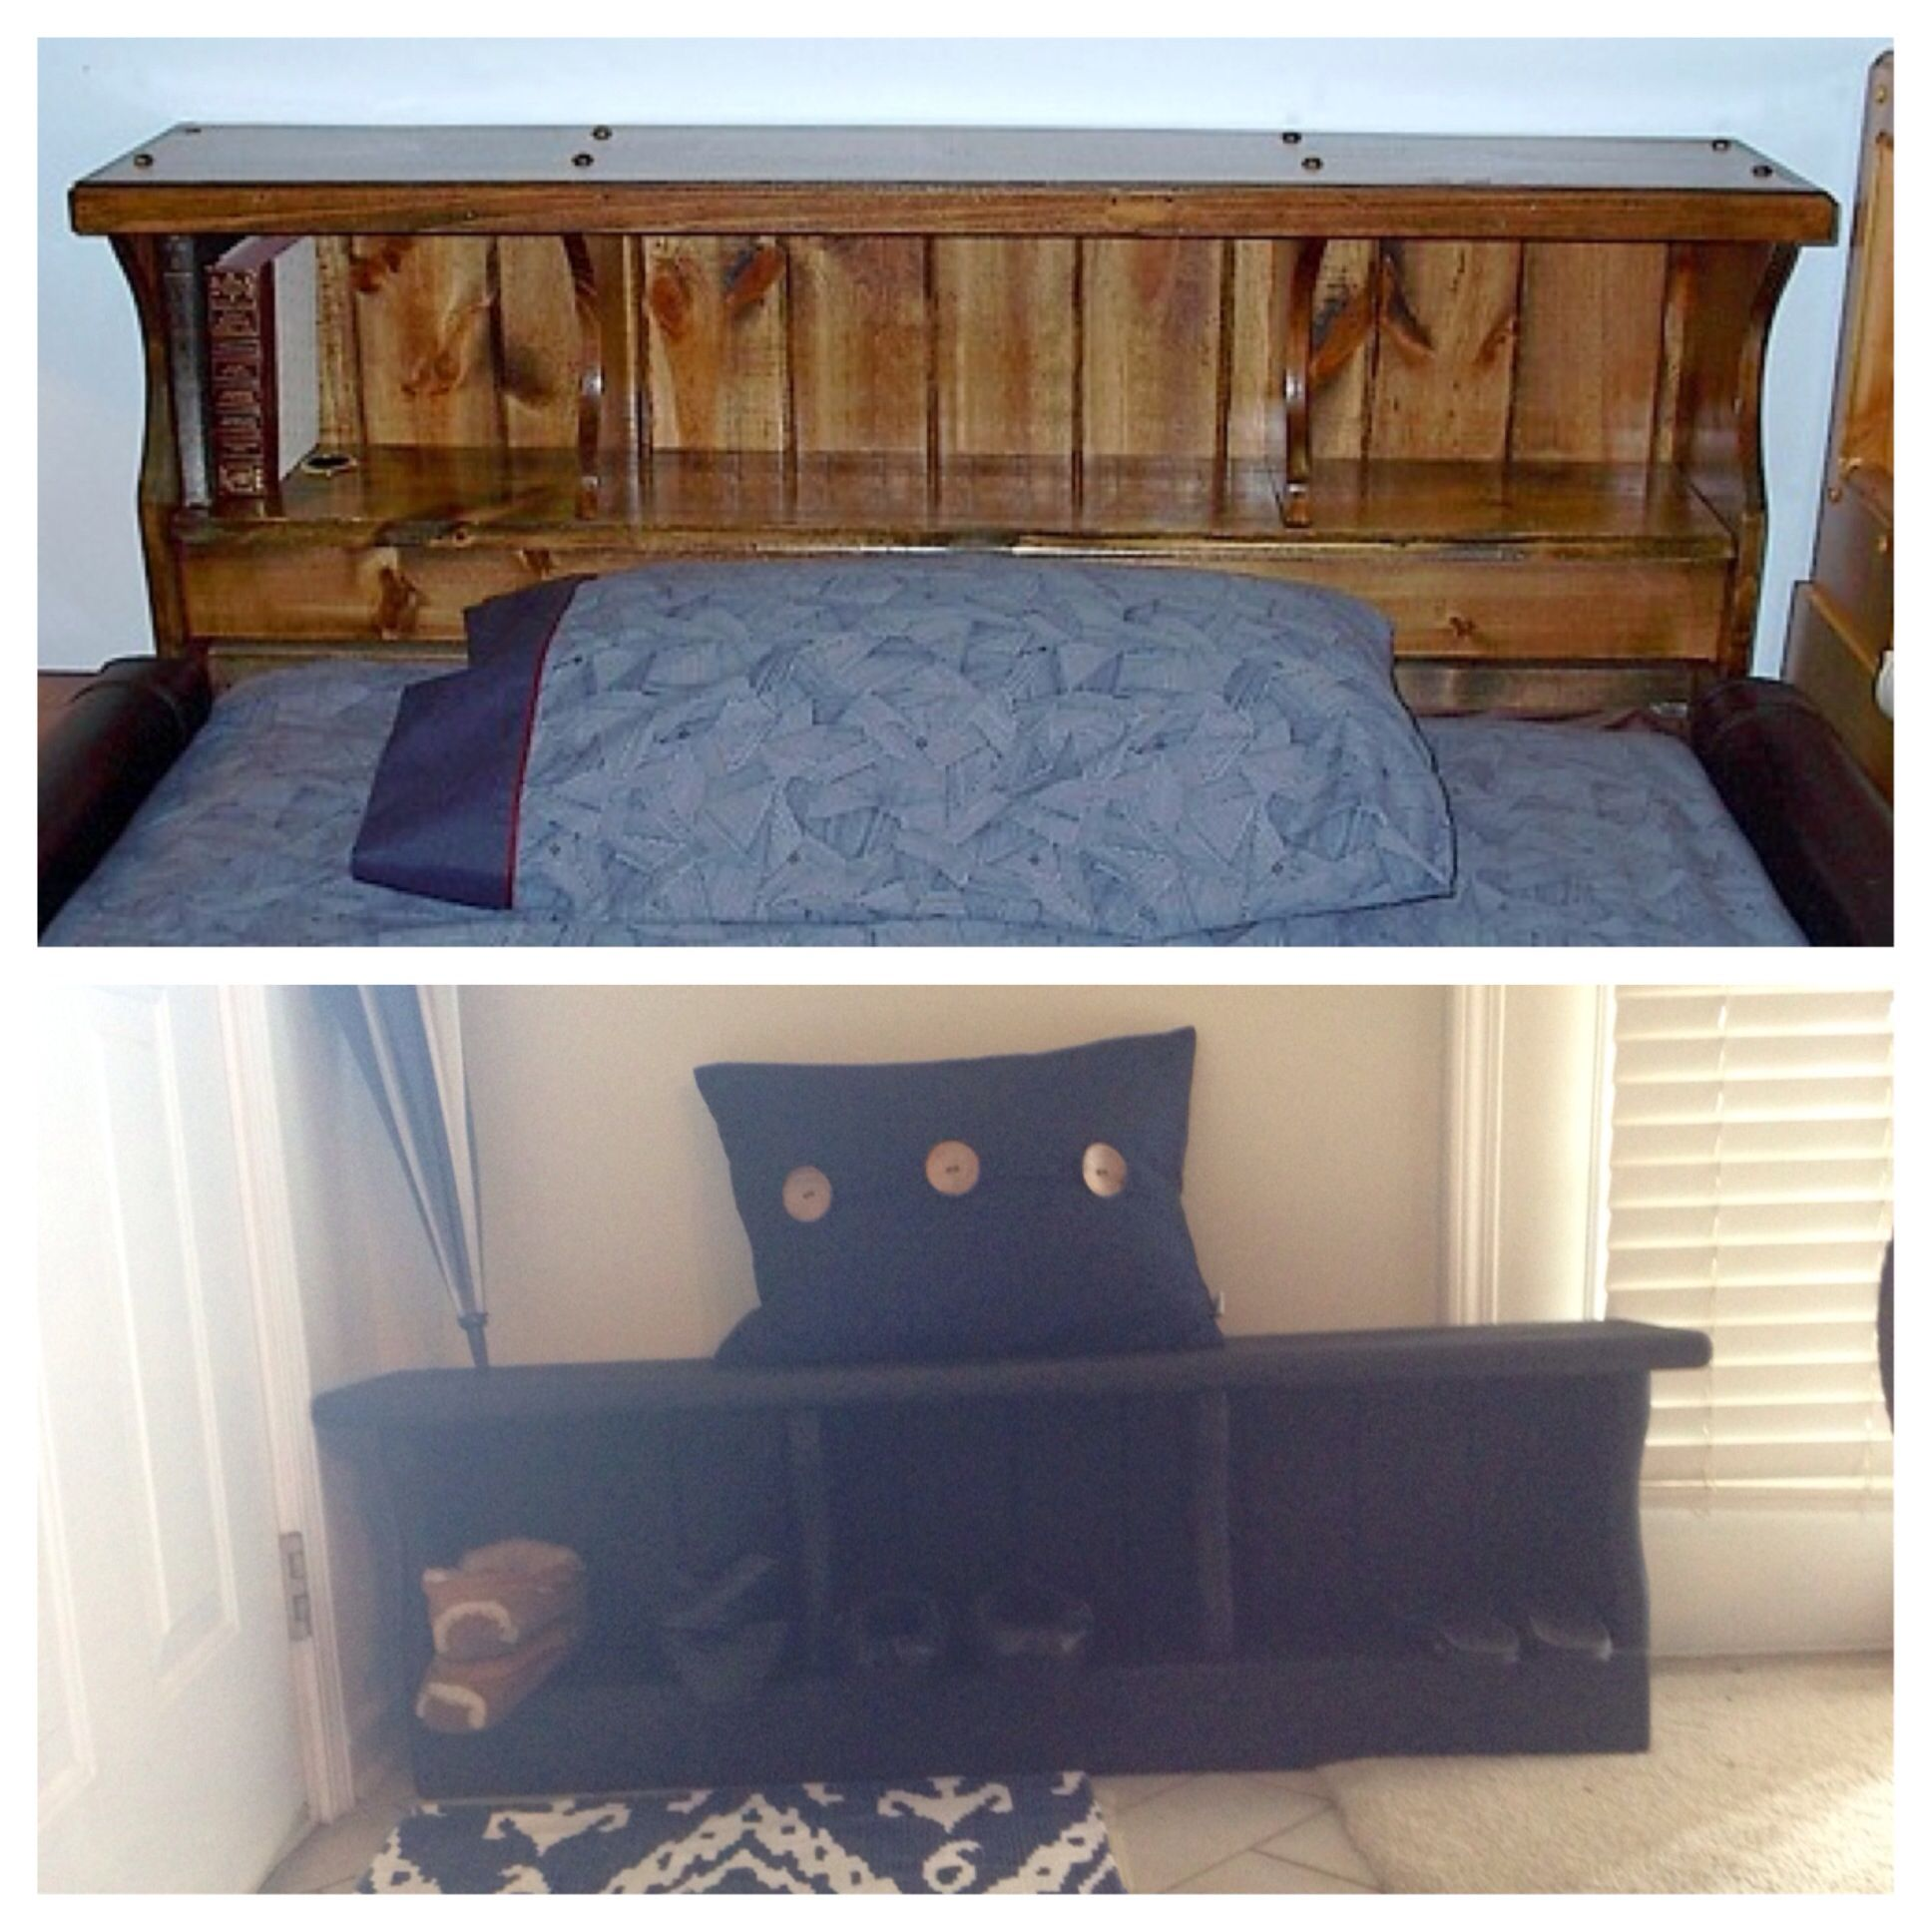 Does Goodwill Accept Sleeper Sofas Modern Cream Leather Sectional Sofa We Bought An Old Waterbed Headboard At And